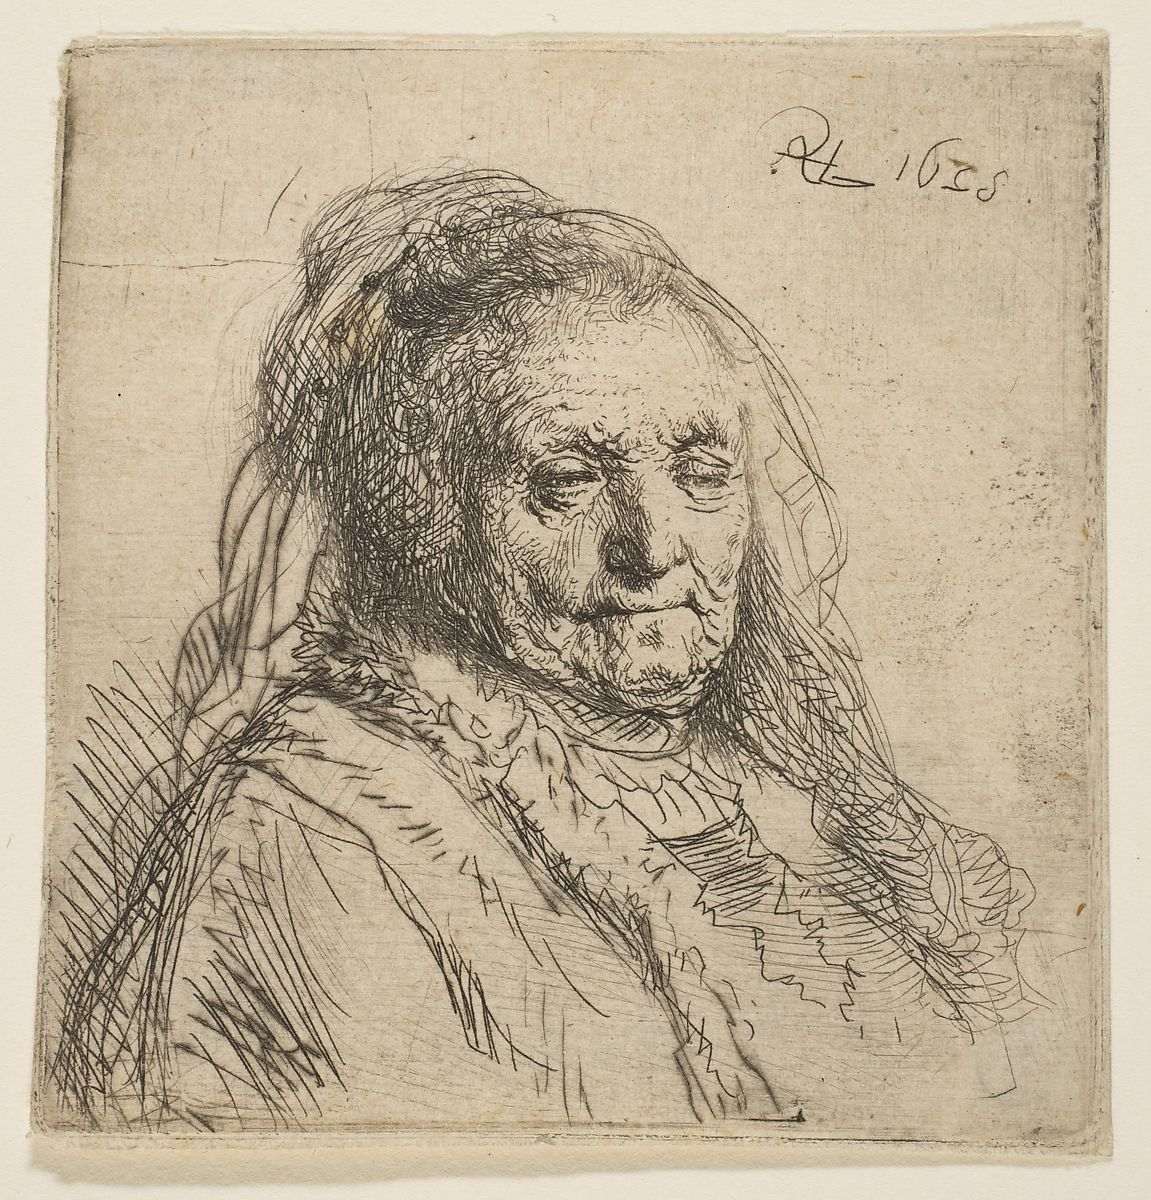 Rembrandt Van Rijn 1606 1669 Prints Essay The Metropolitan Museum Of Art Heilbrunn Timeline Of Art History